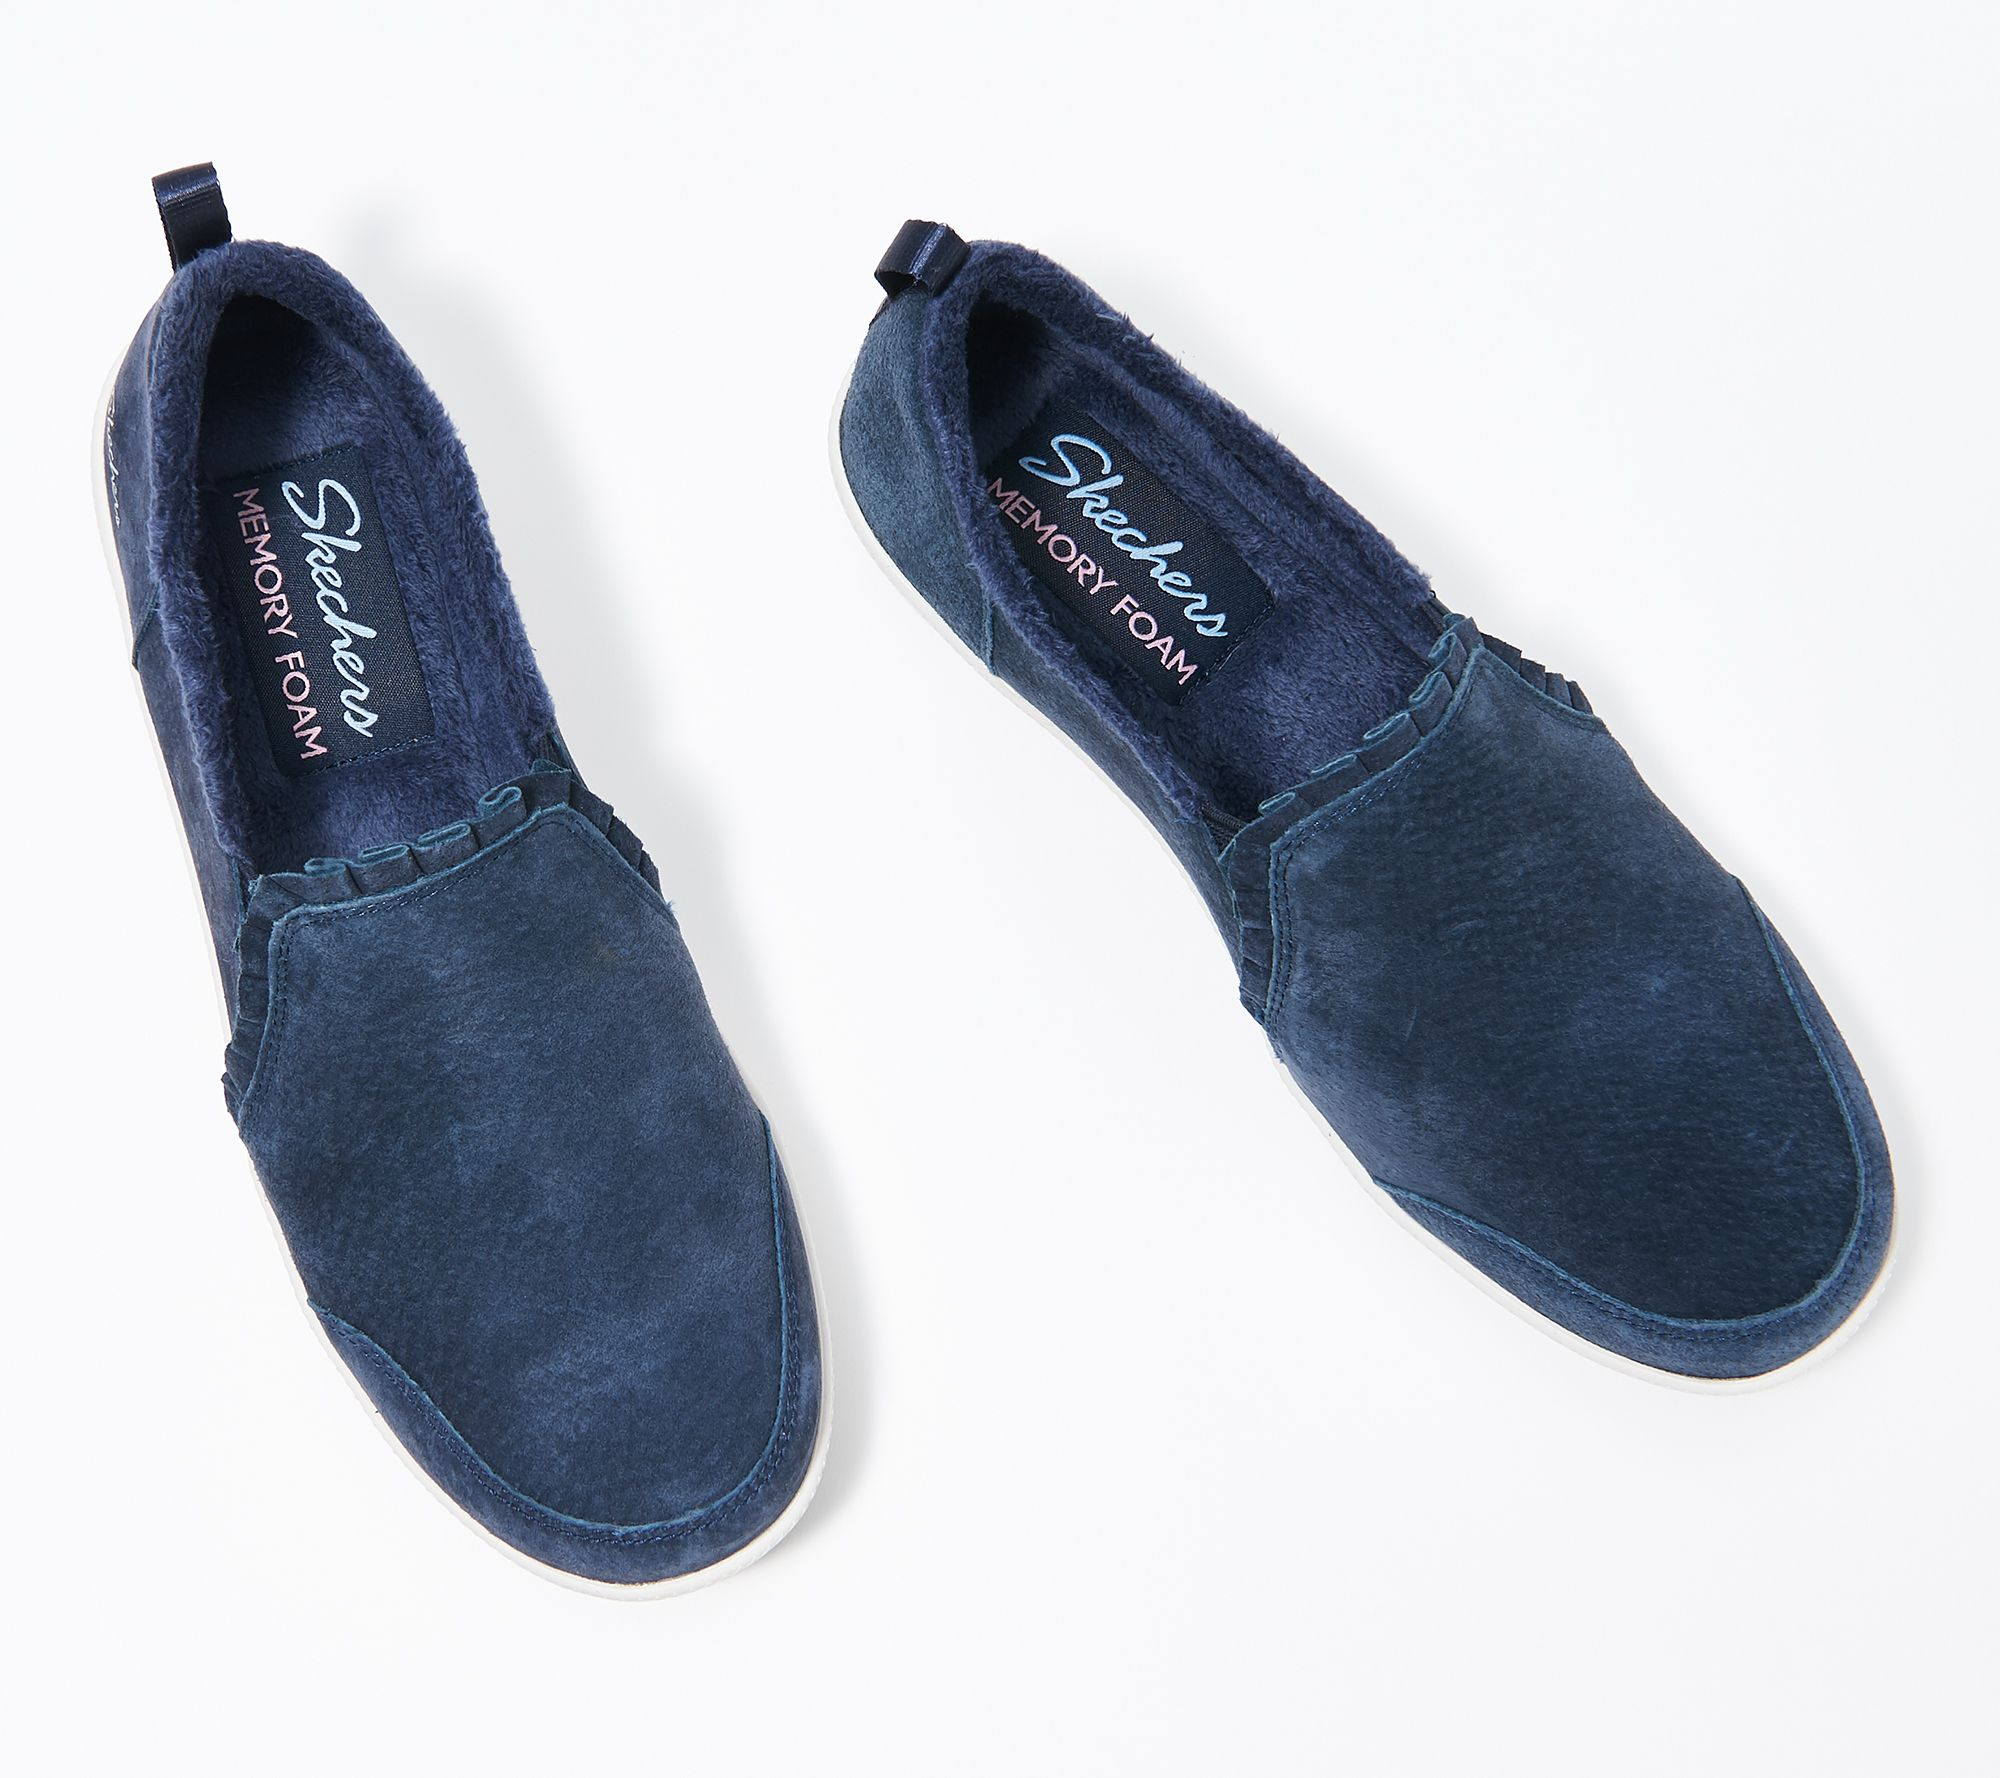 Skechers Suede Ruffle Slip-On Shoes - Madison Ave - Plushed — QVC com